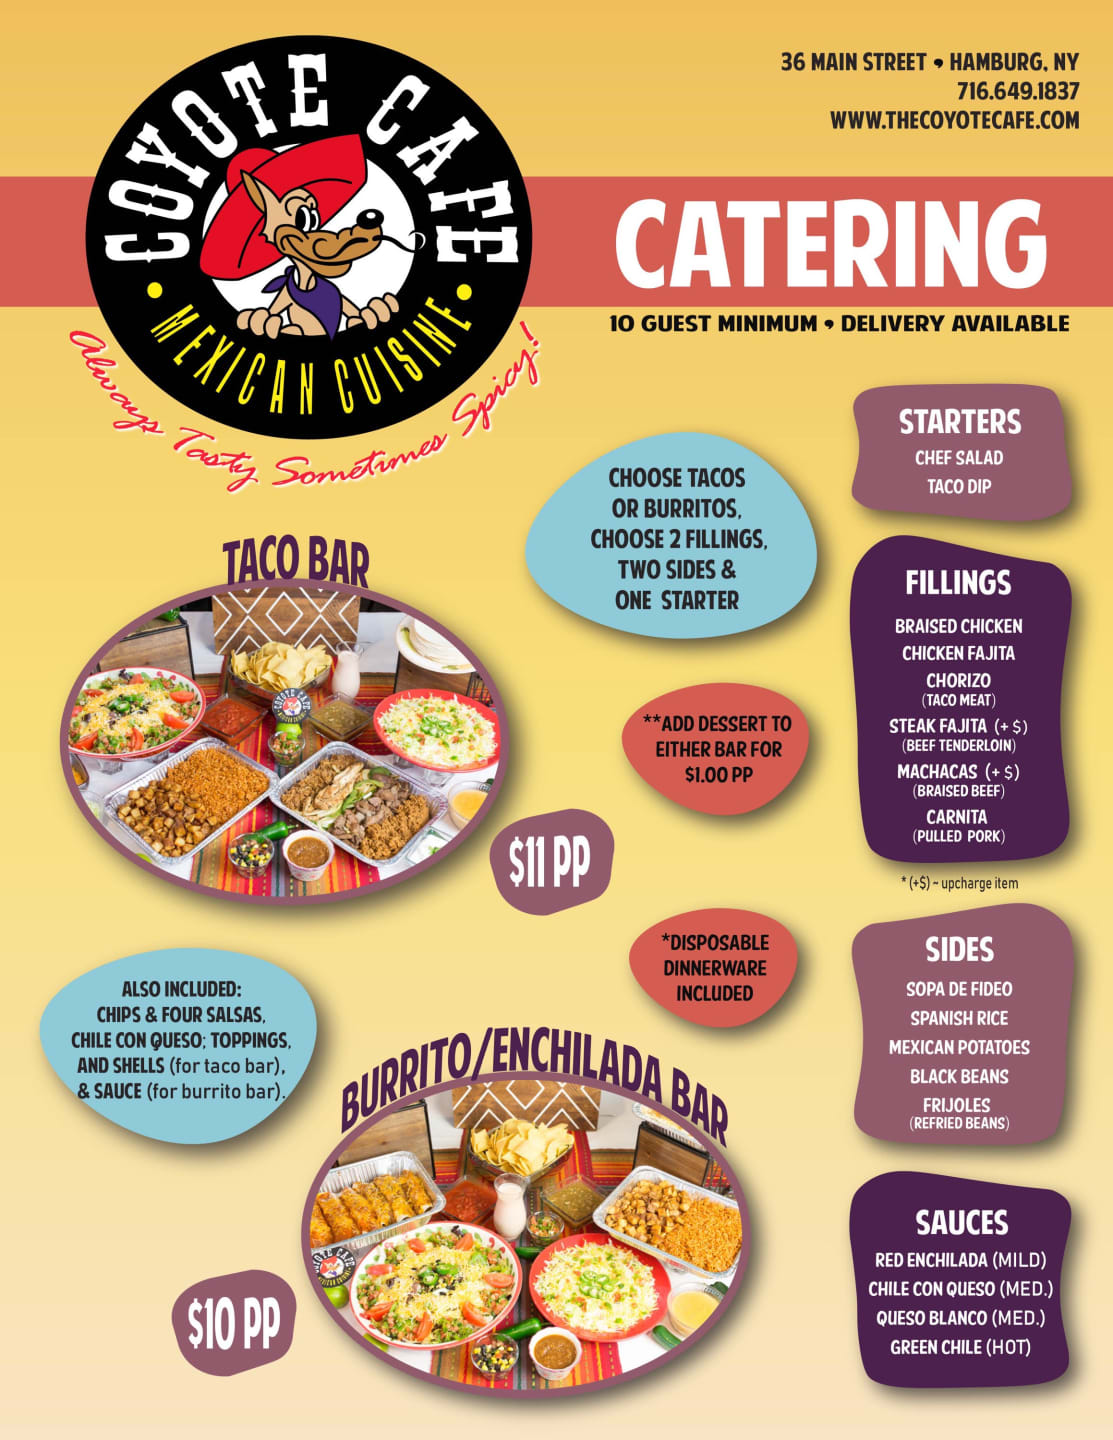 Catering Menu. 10 Guest min. Choice of Taco Bar for $11 per person or Burrito/Enchilada Bar $10 per person